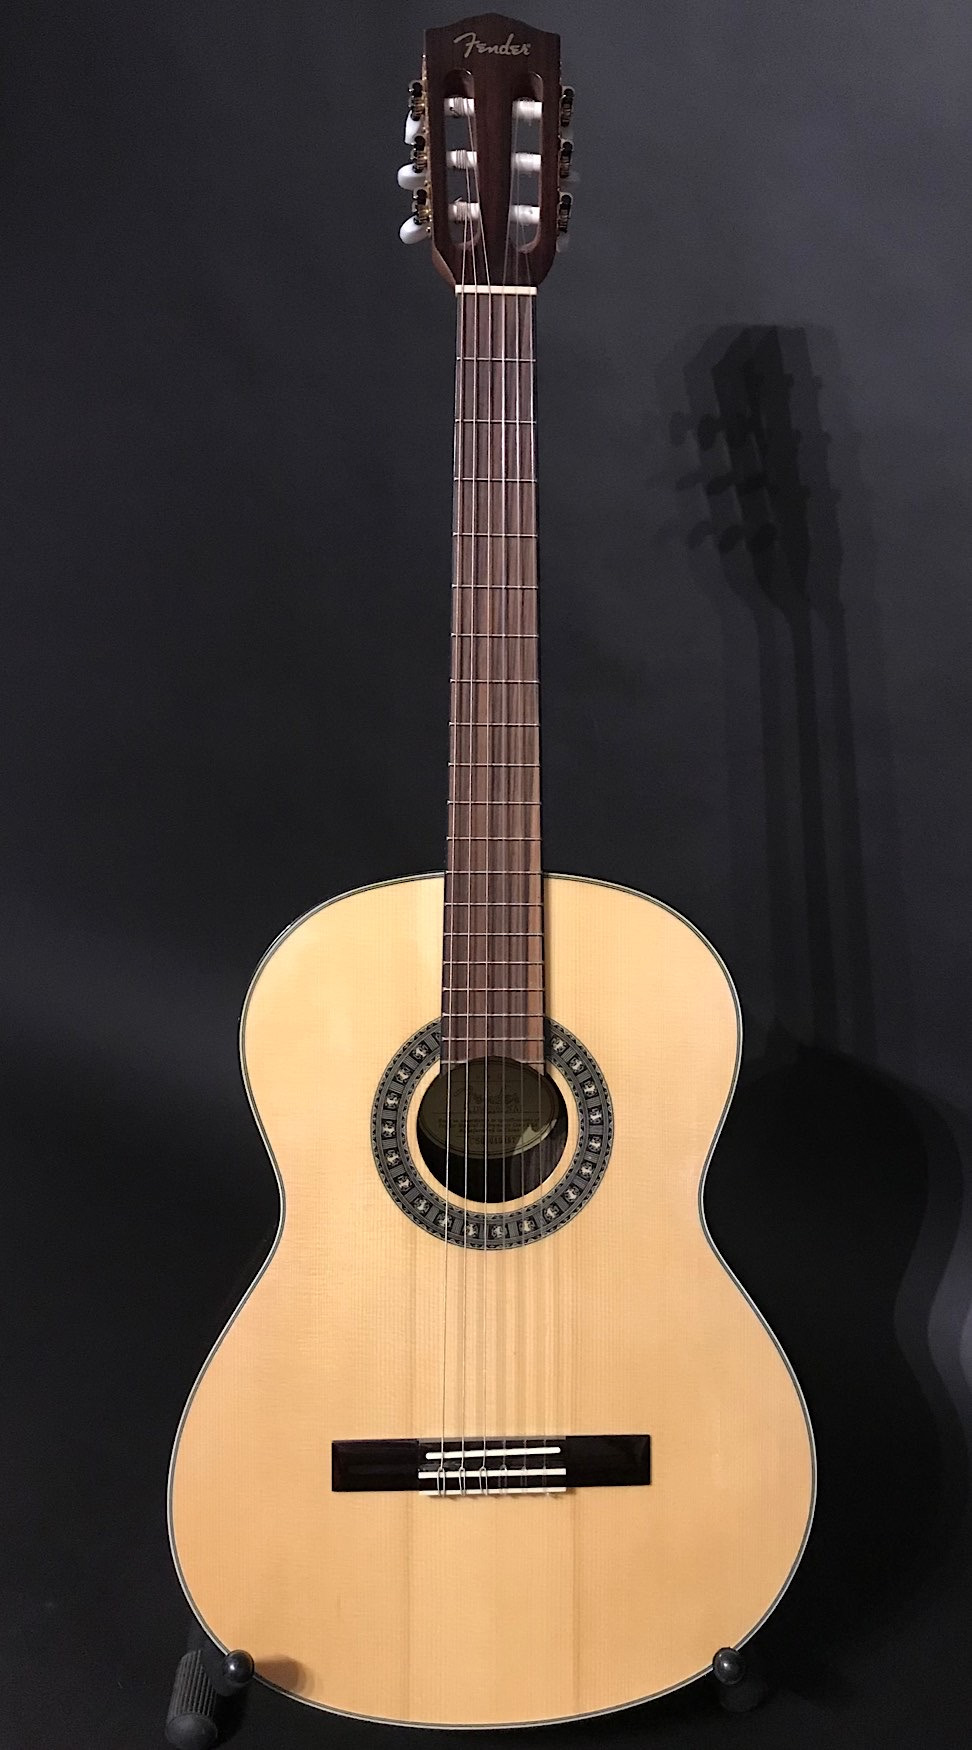 Fender CDN-210S Nat Narrow Neck Nylon Strung Guitar